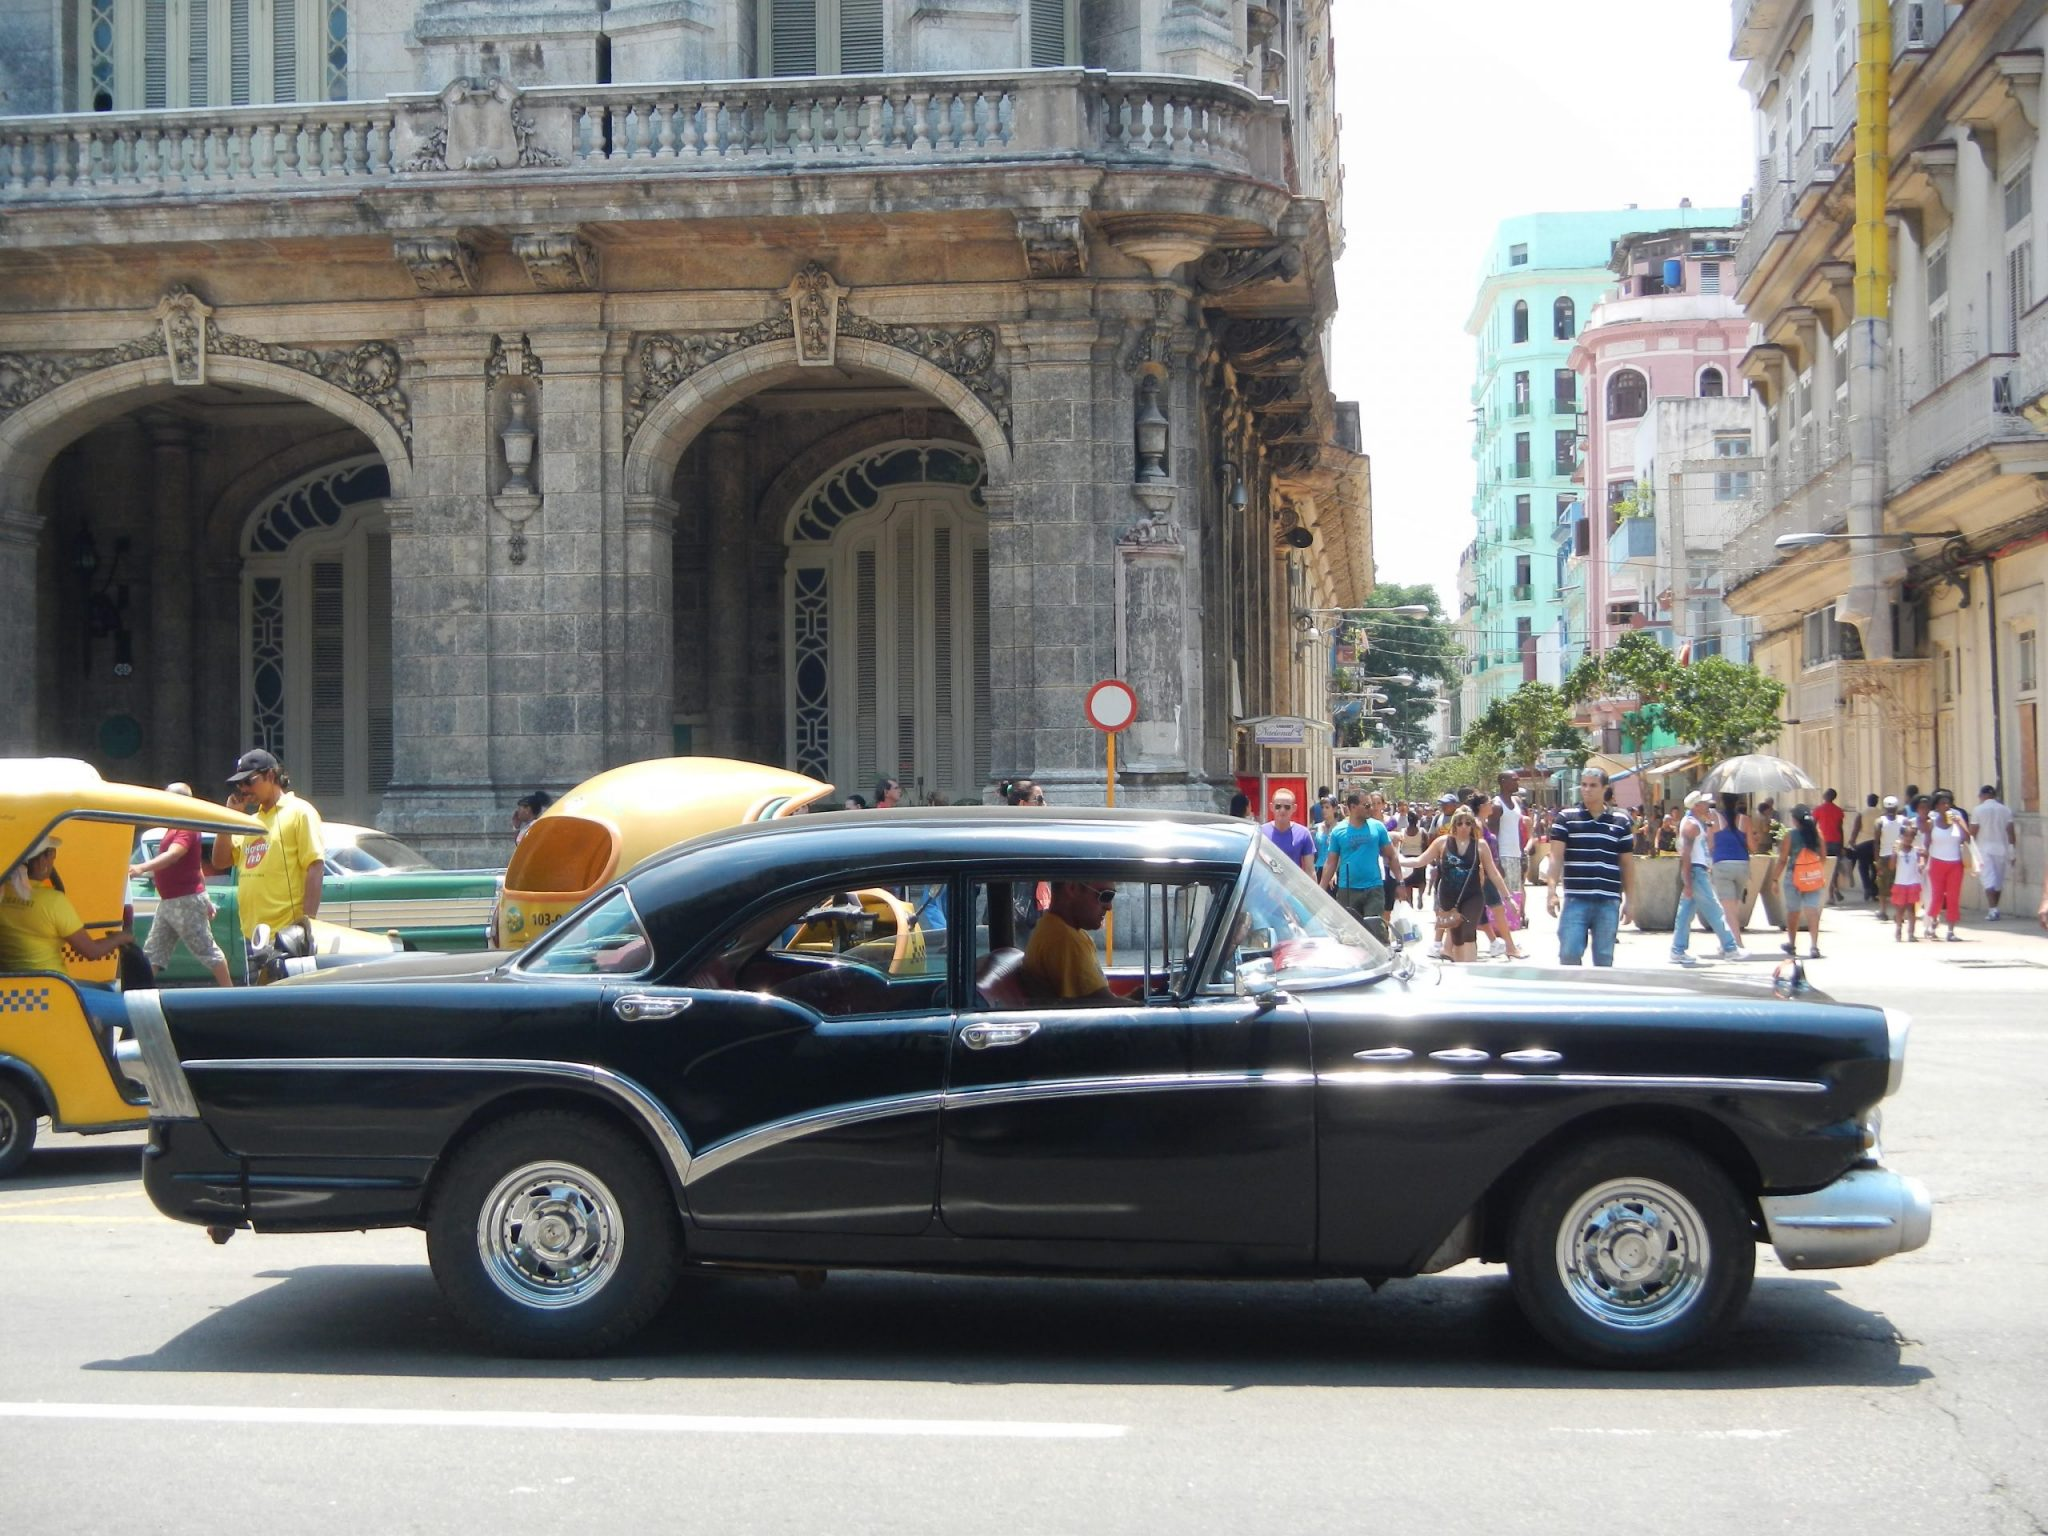 On the streets of Havana, where old cars prevail